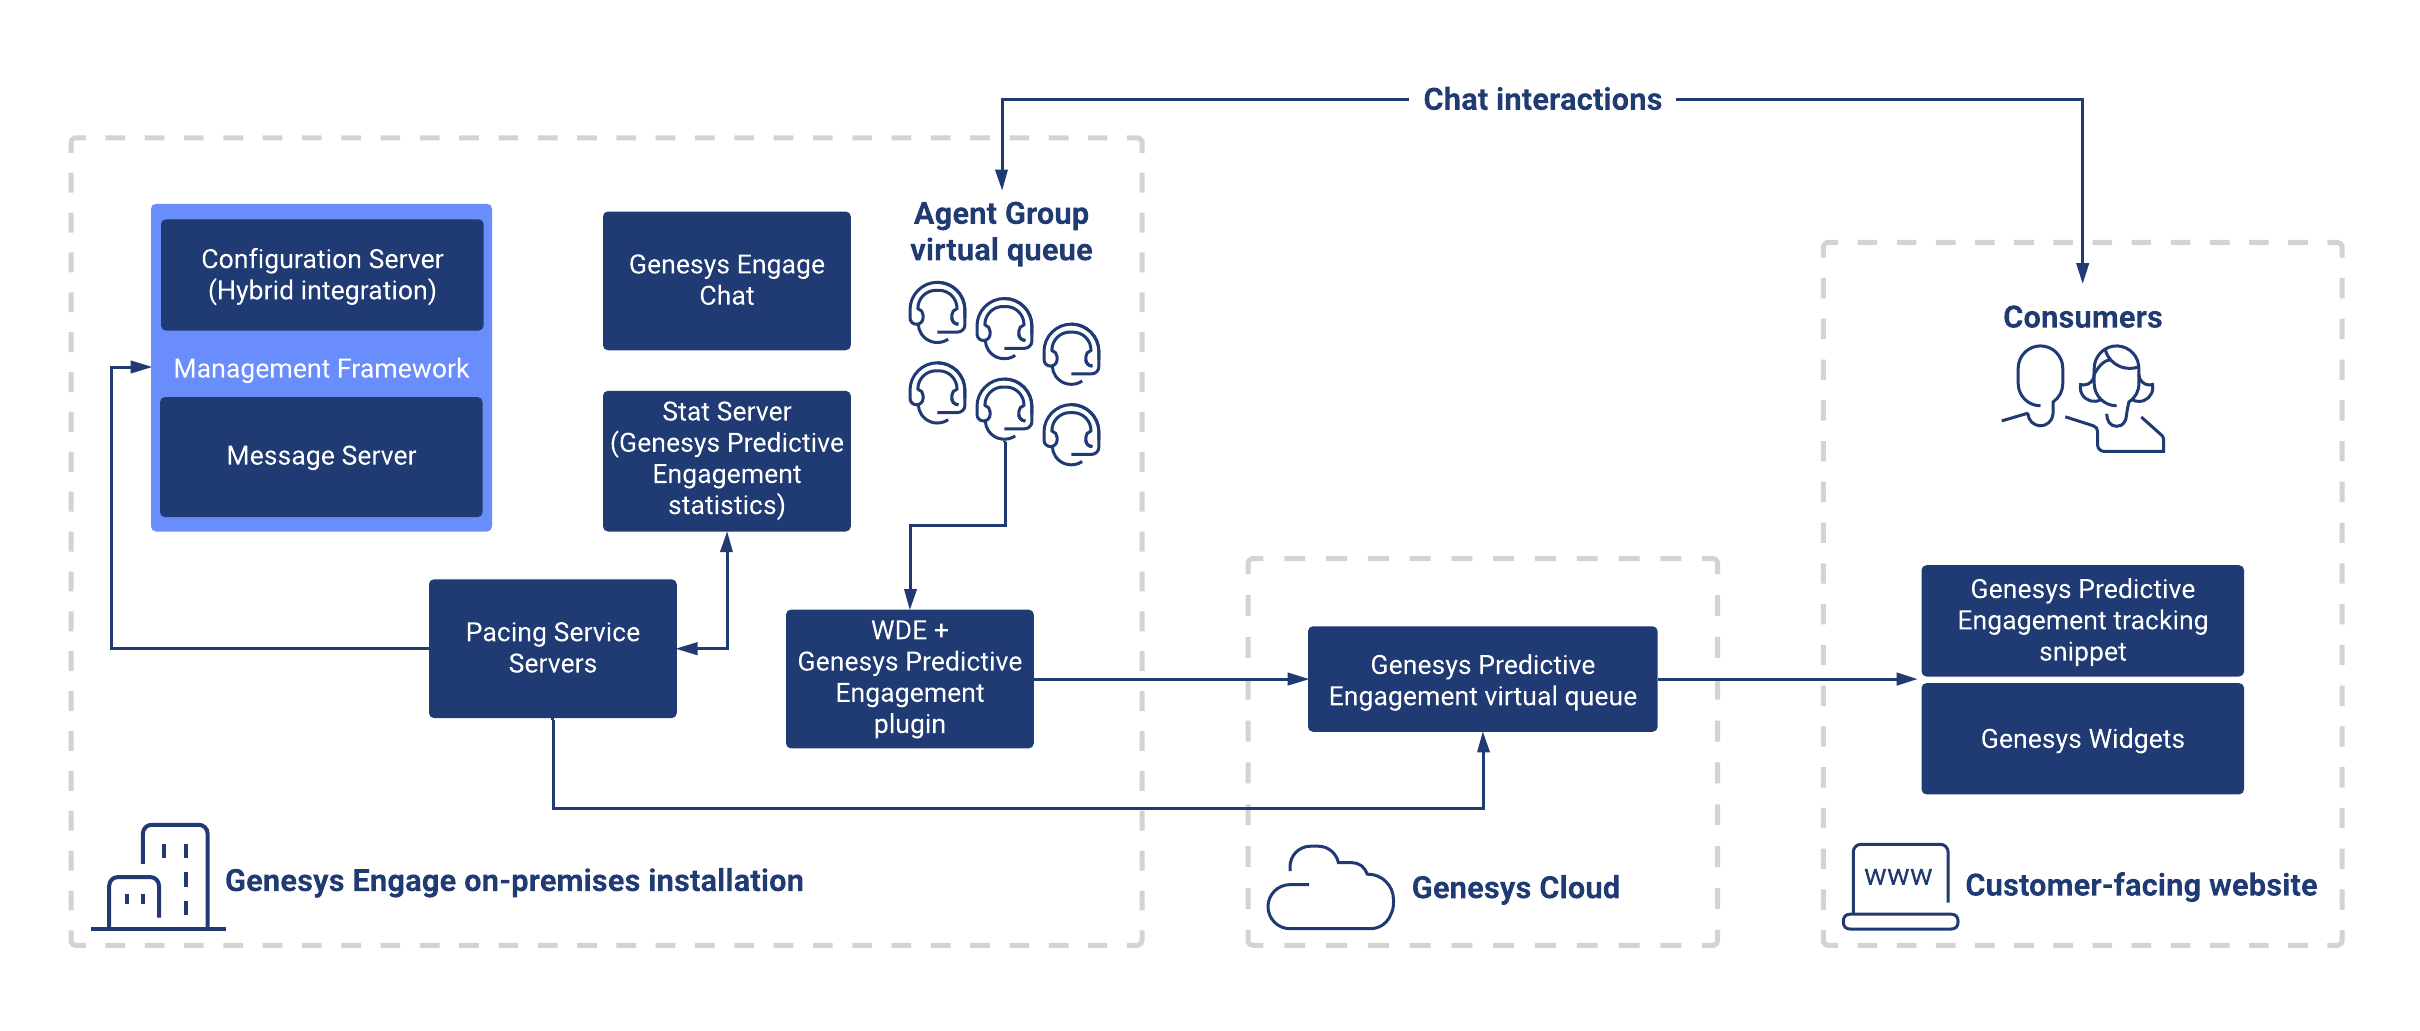 Gpe pe premises architecture overview diagram.png